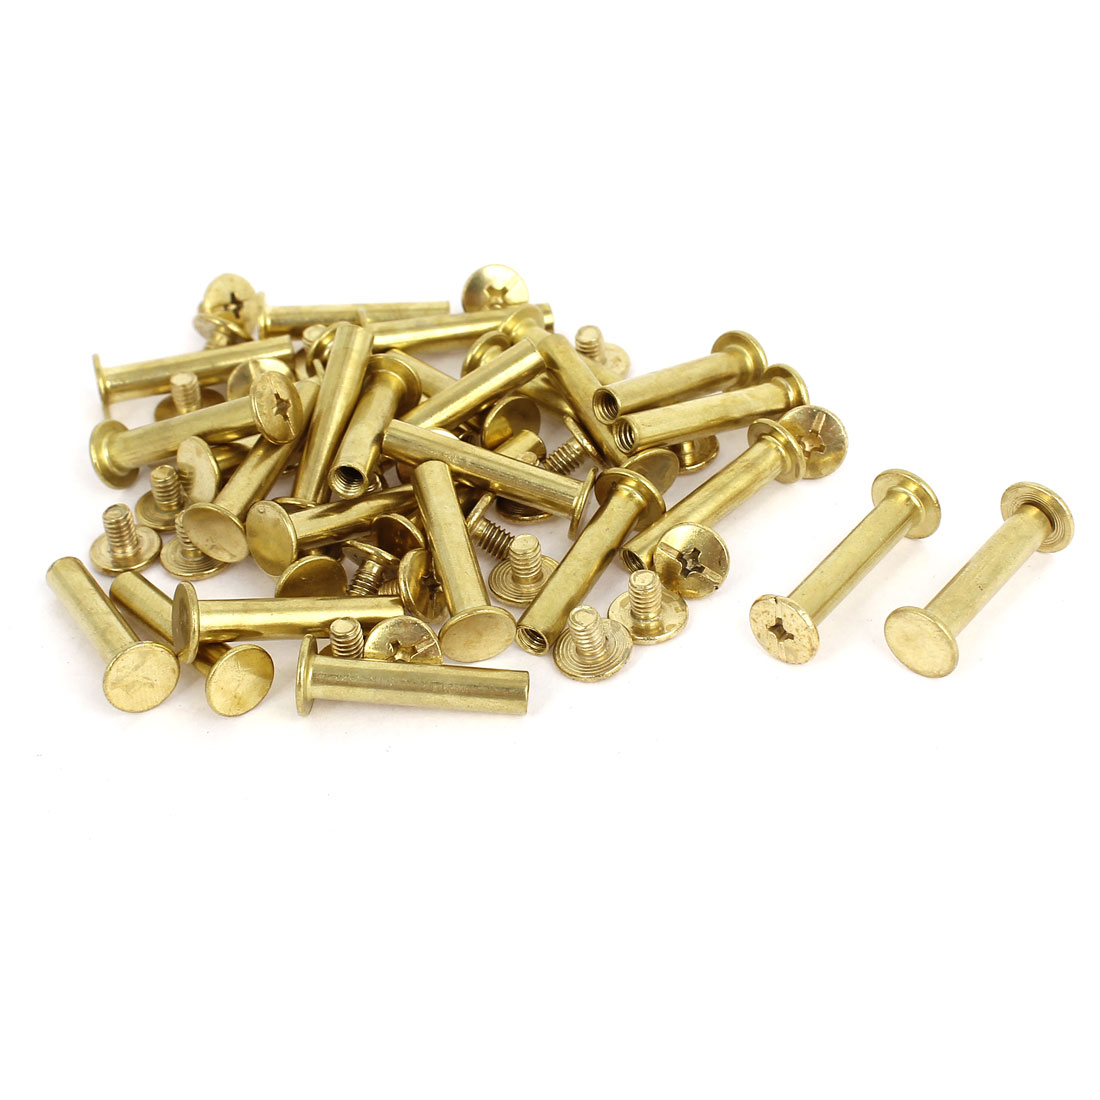 Brass Plated 5x25mm Binding Chicago Screw Post 30pcs for Leather Scrapbook